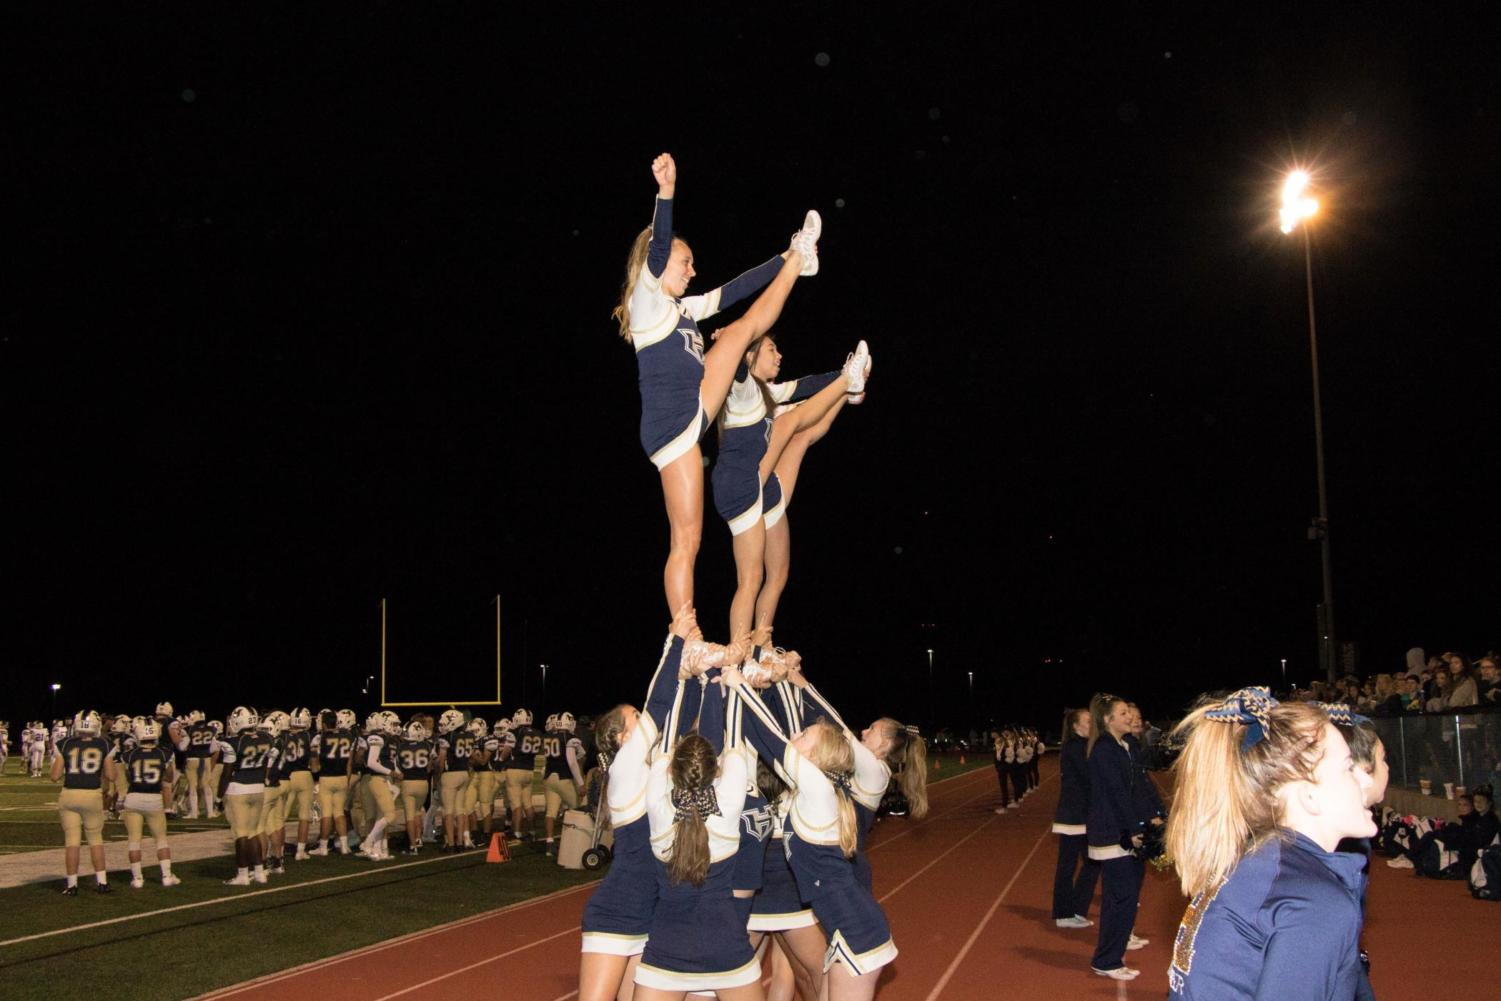 Holt Varsity Fall cheer hypes up the crowd with a heel stretch pyramid during half time.